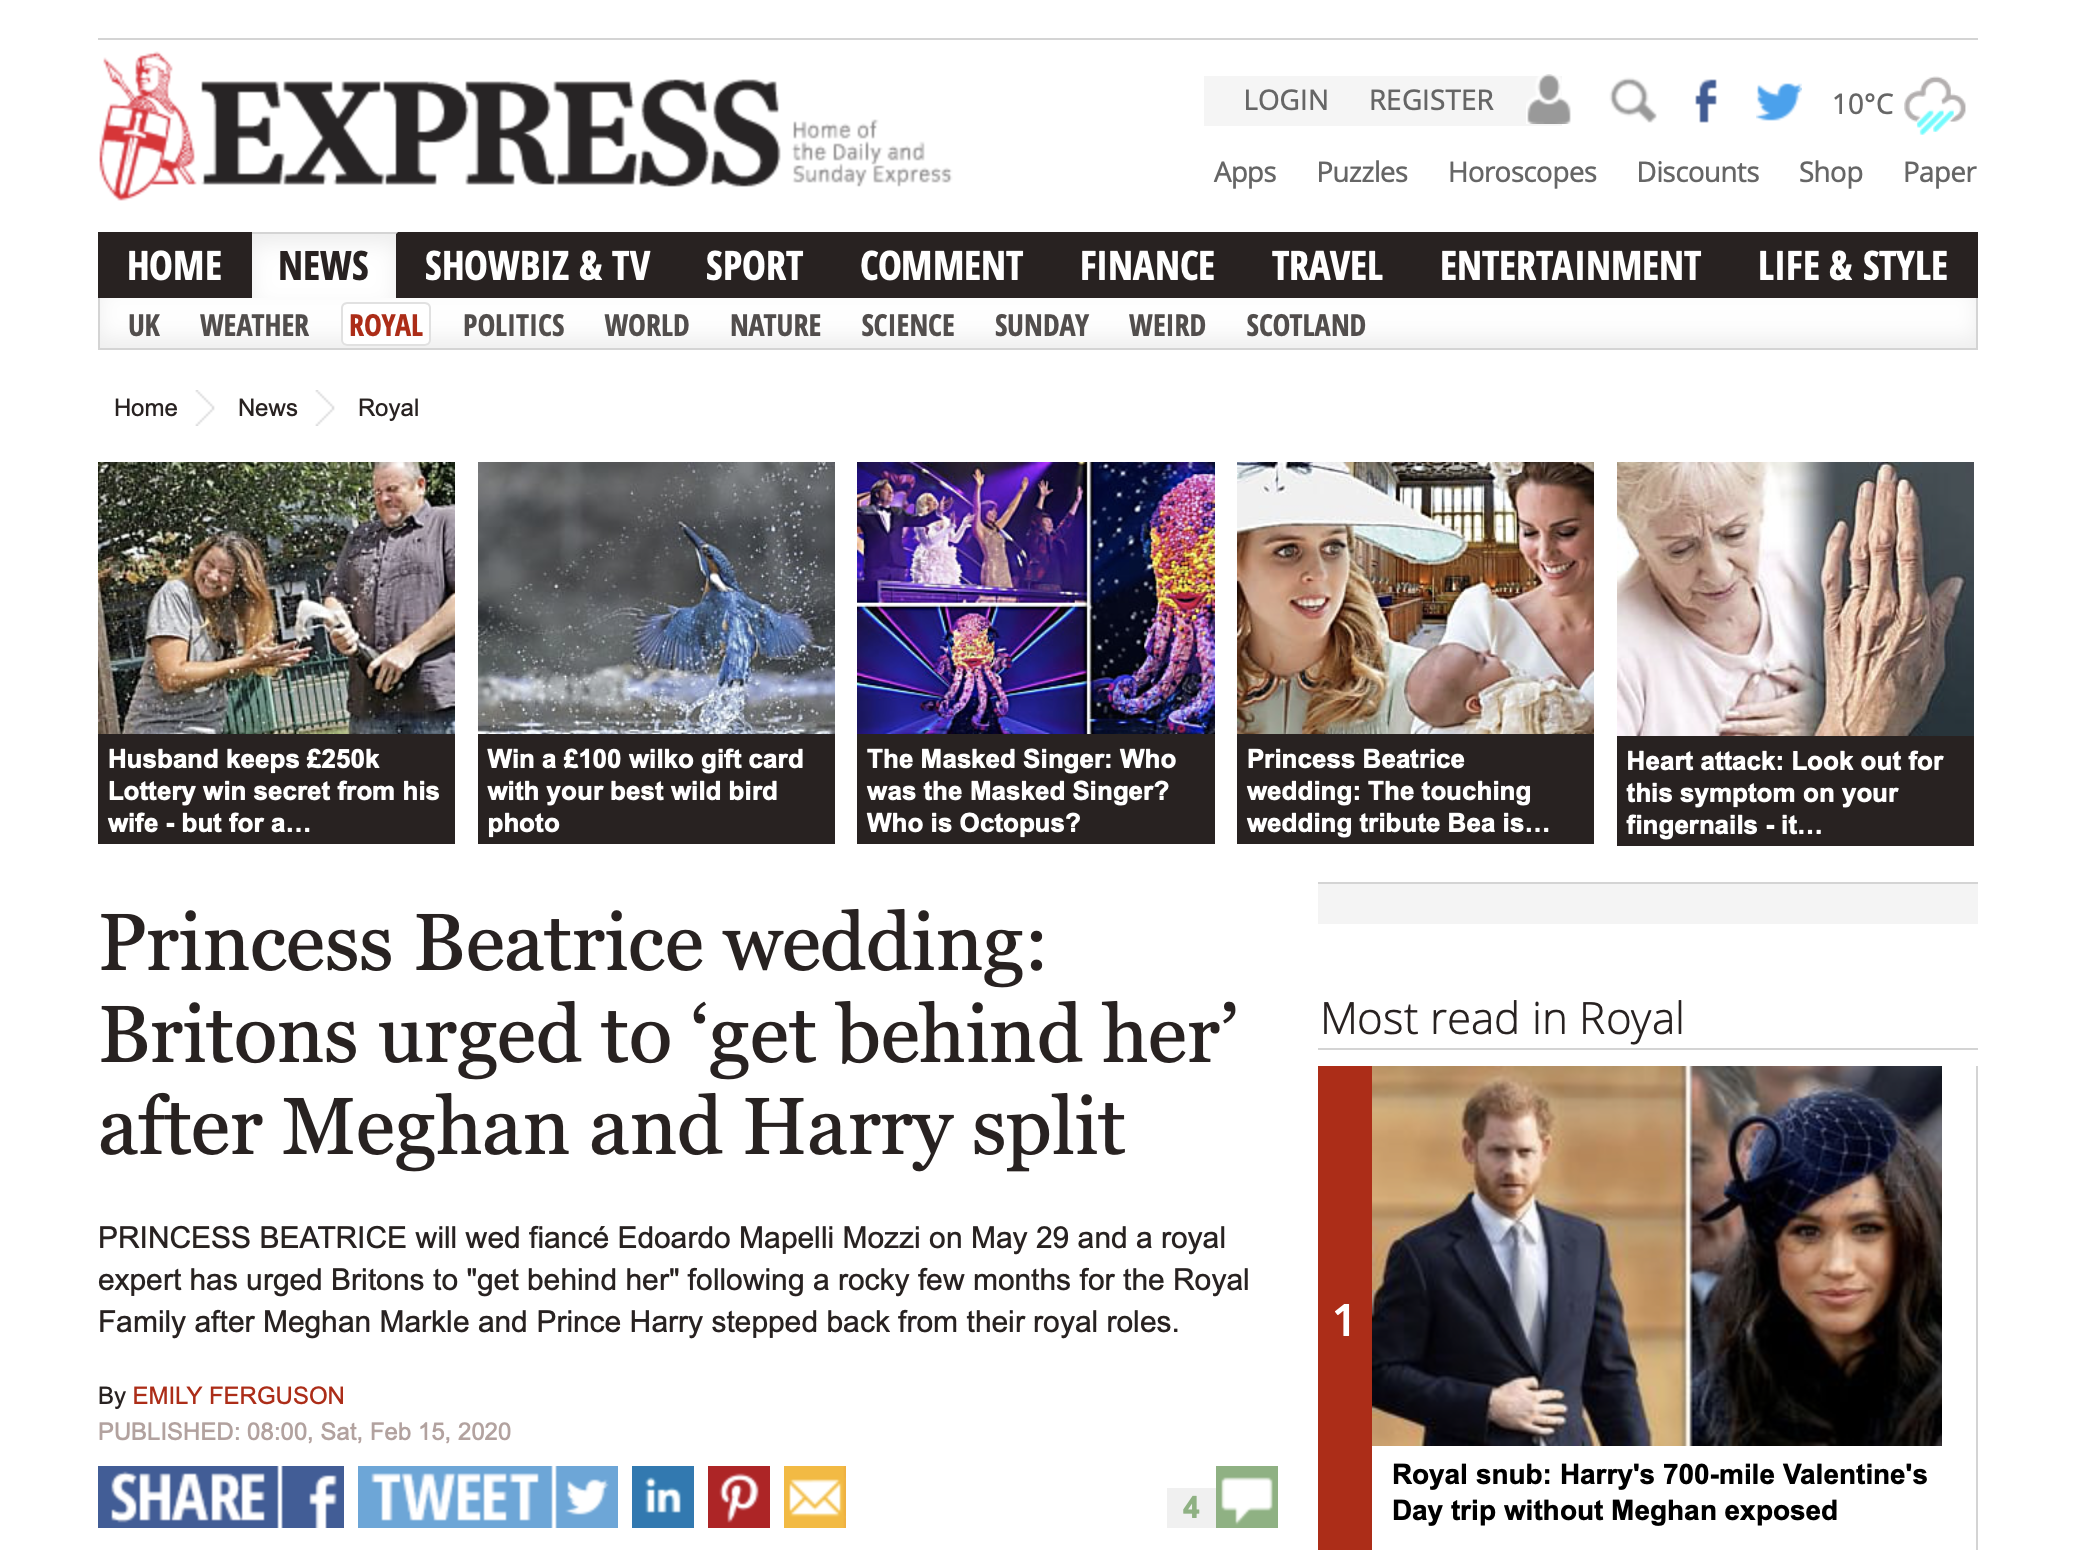 Daily Express - Royal Wedding